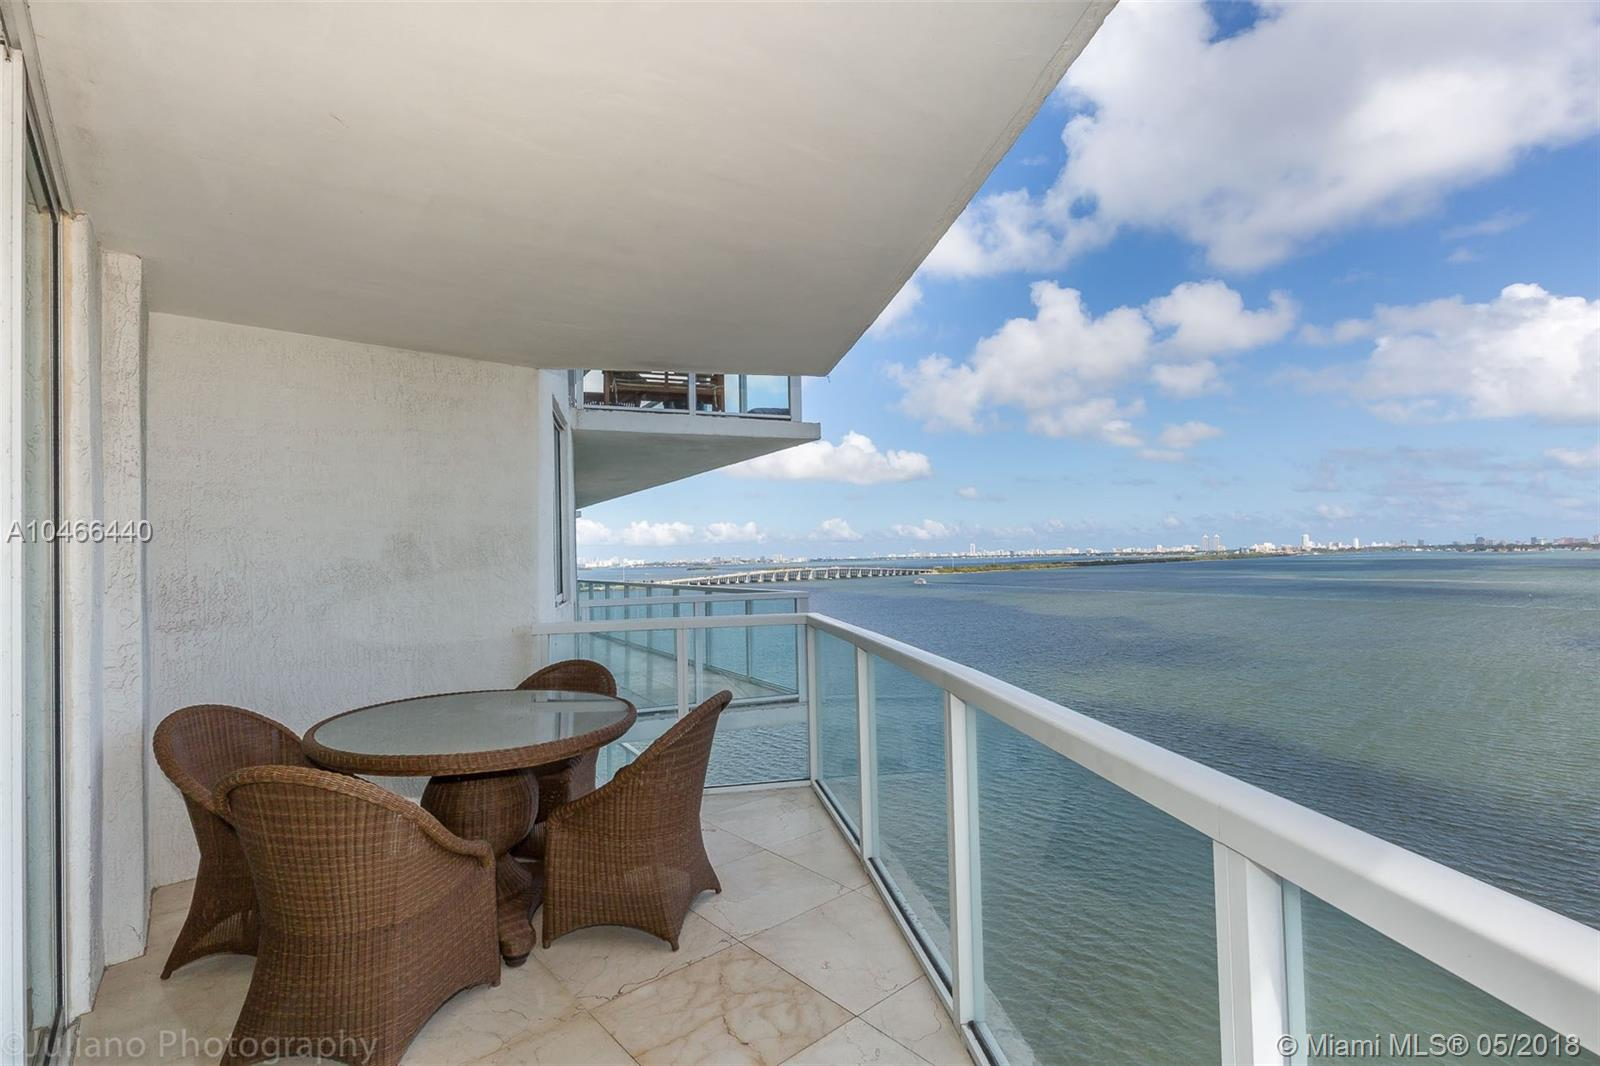 Edgewater Condo - Modern Corner Unit With Direct Water Views Of The Bay. Spacious Floor Plan, 2Bed / 2.5Bath With 1508 Sq Ft And Beautiful Contemporary Furniture (Furniture Negociable).<Br /><Br />Great Amenities: Pool Overlooking The Bay, Whirlpool, Sauna, Steam Room, Gym, Yoga Room, Billiards Room, Party Room.<Br /><Br />Minutes From Downtown, Brickell, Midtown, Wynwood, Design District And Miami Beach. Shops And Restaurants At Your Doorstep.